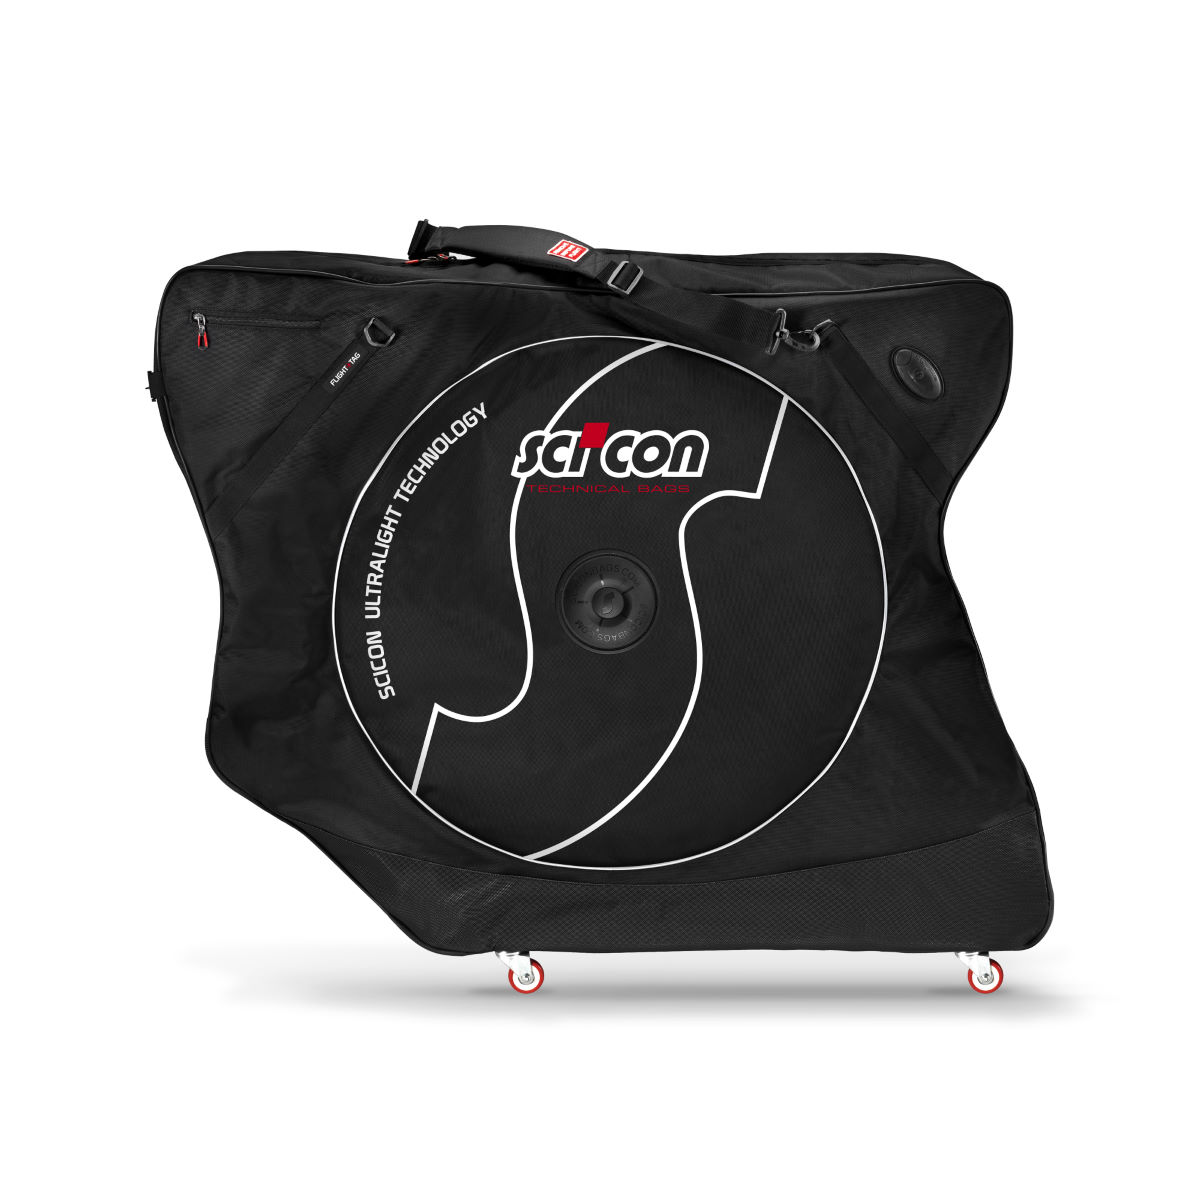 How to Disassemble Your Bike in a Bike Bag?